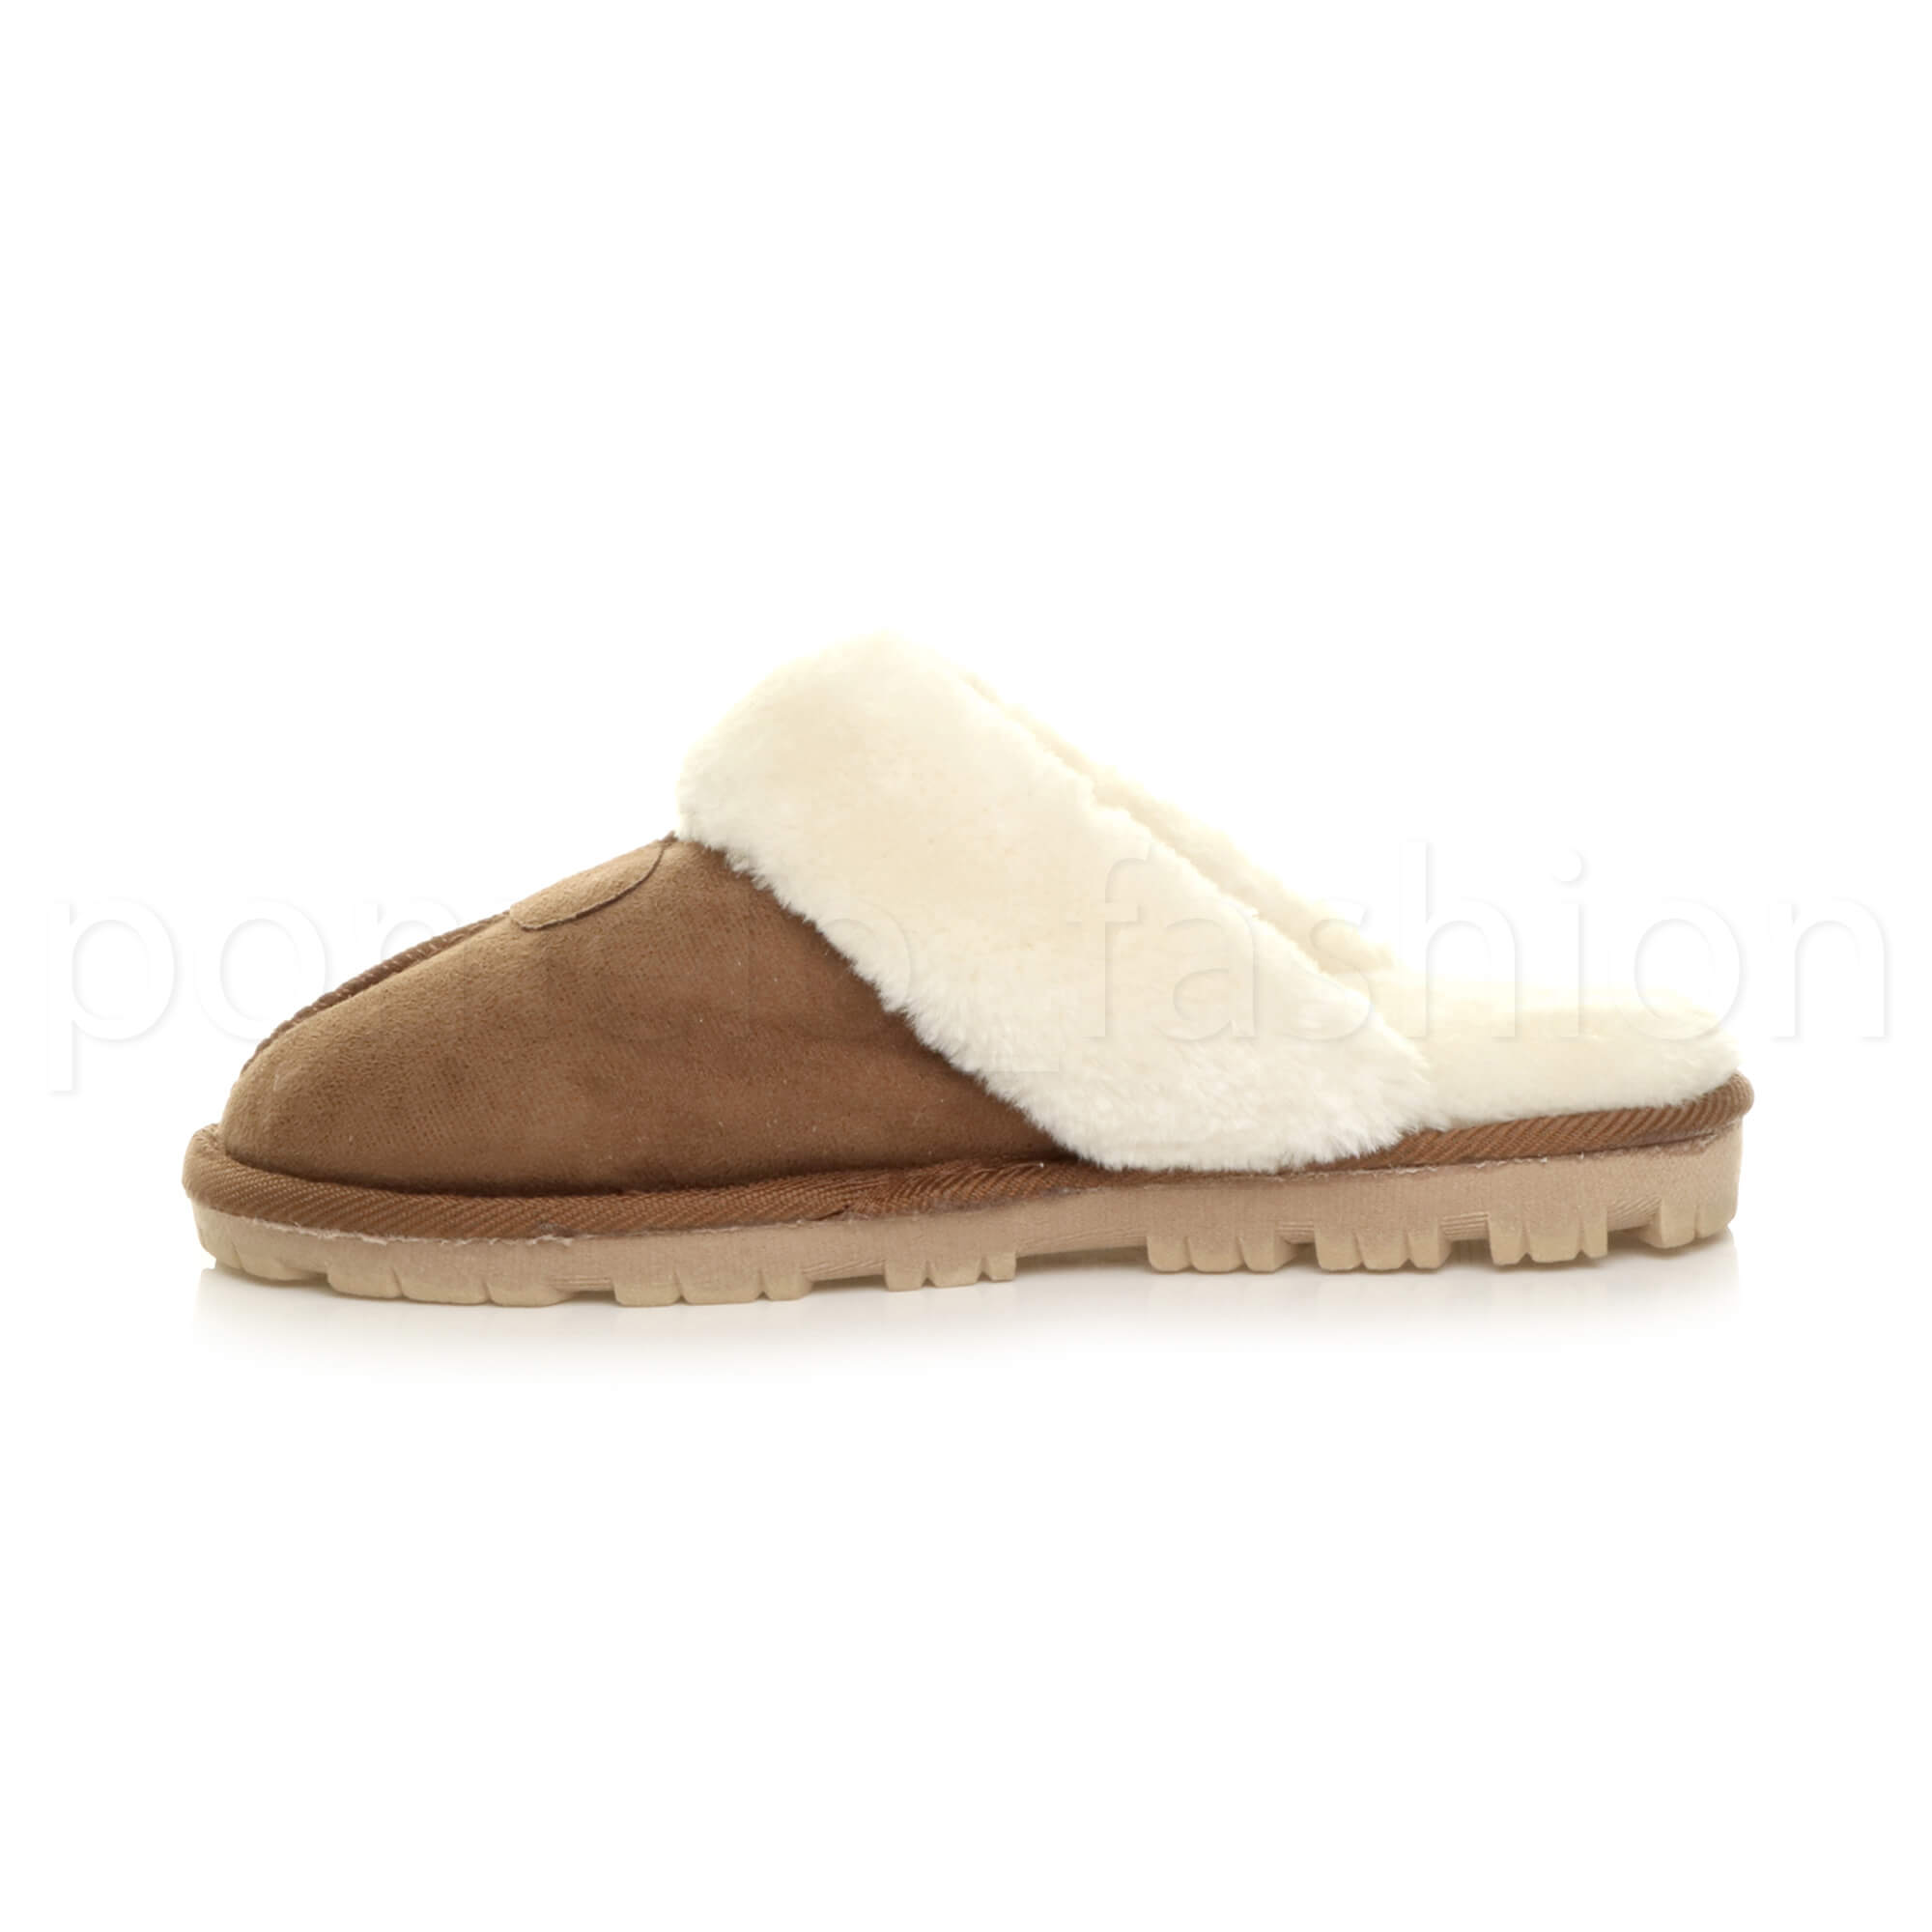 WOMENS-LADIES-FLAT-FUR-LINED-COMFORTABLE-WINTER-MULES-SLIPPERS-HOUSE-SHOES-SIZE thumbnail 46